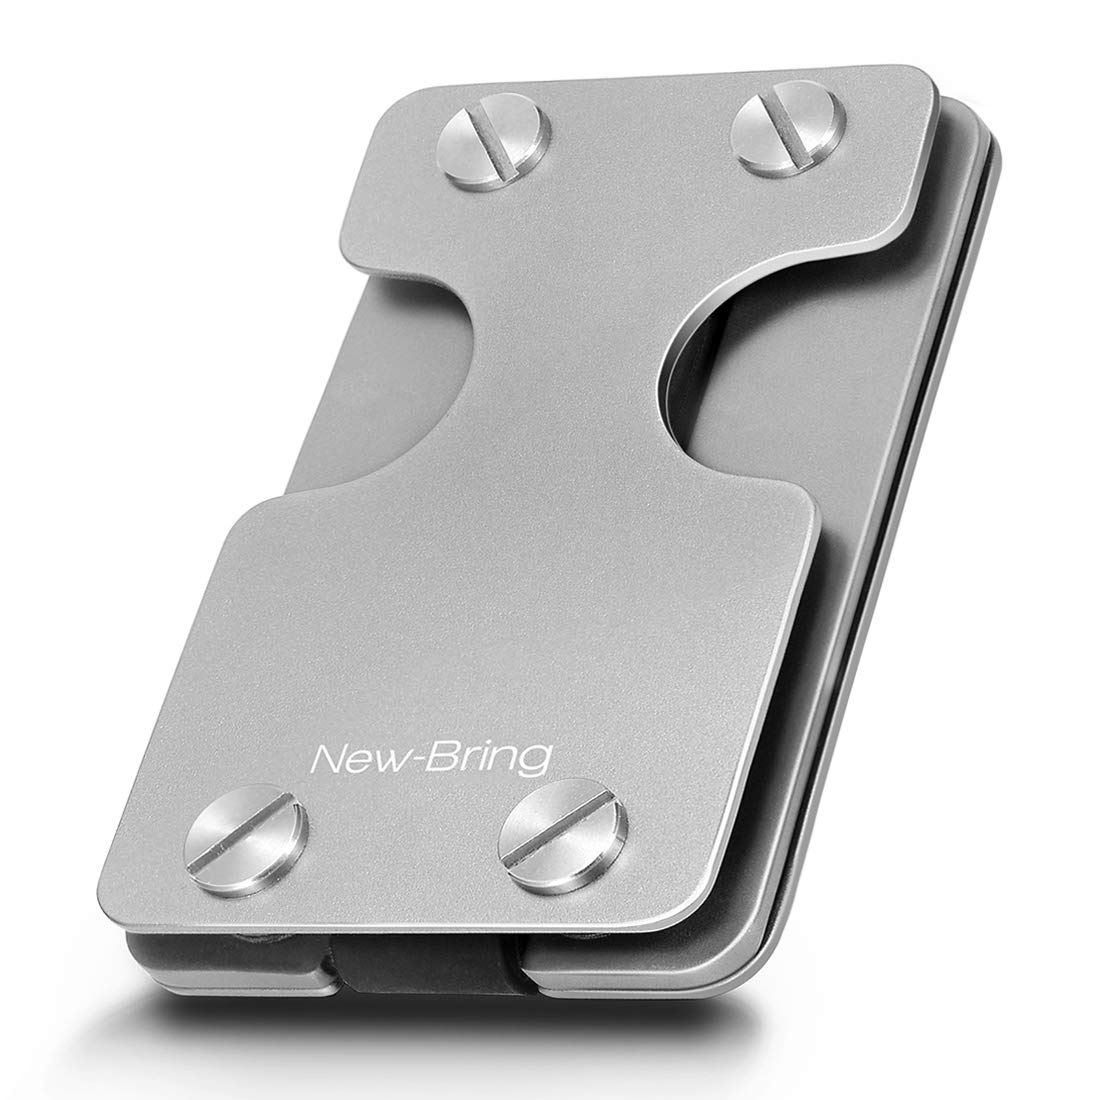 NEW-BRING | Multifunction Compact Metal Key Holder and Credit Card Organizer Money Clip Wallet DGNKB01